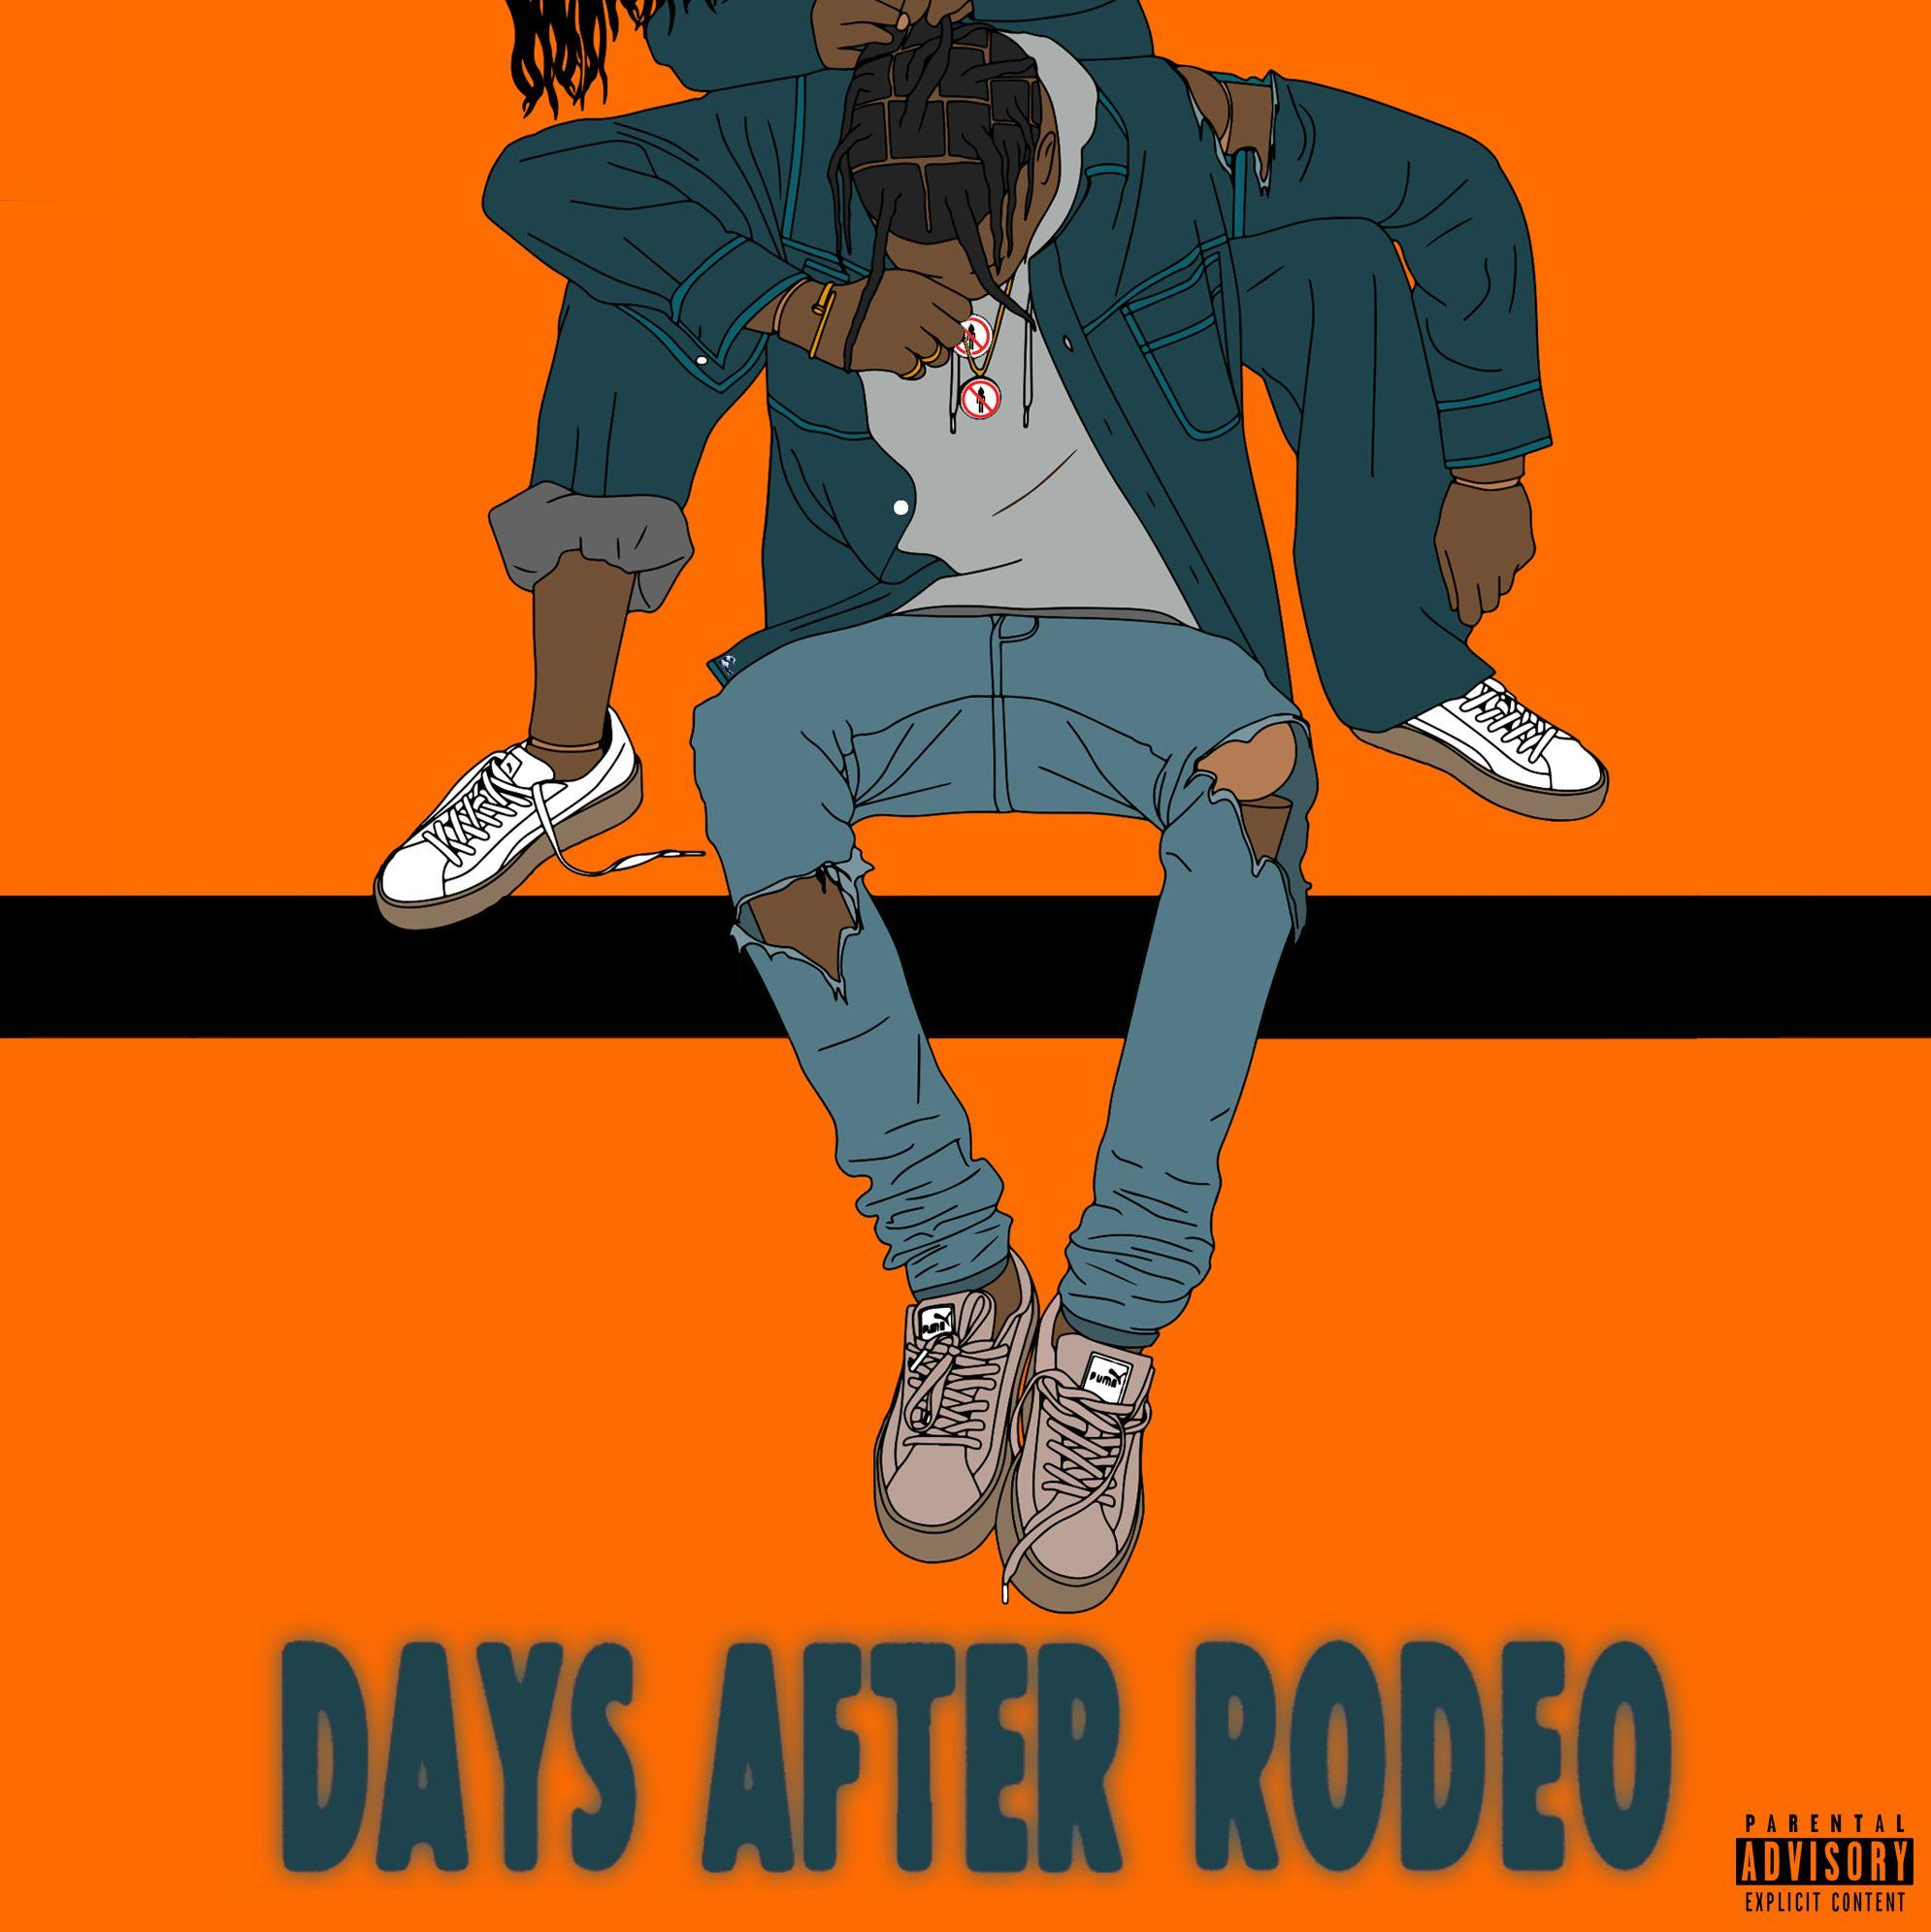 Travis Scott - Days After Rodeo album cover. Thoughts (fan art ...